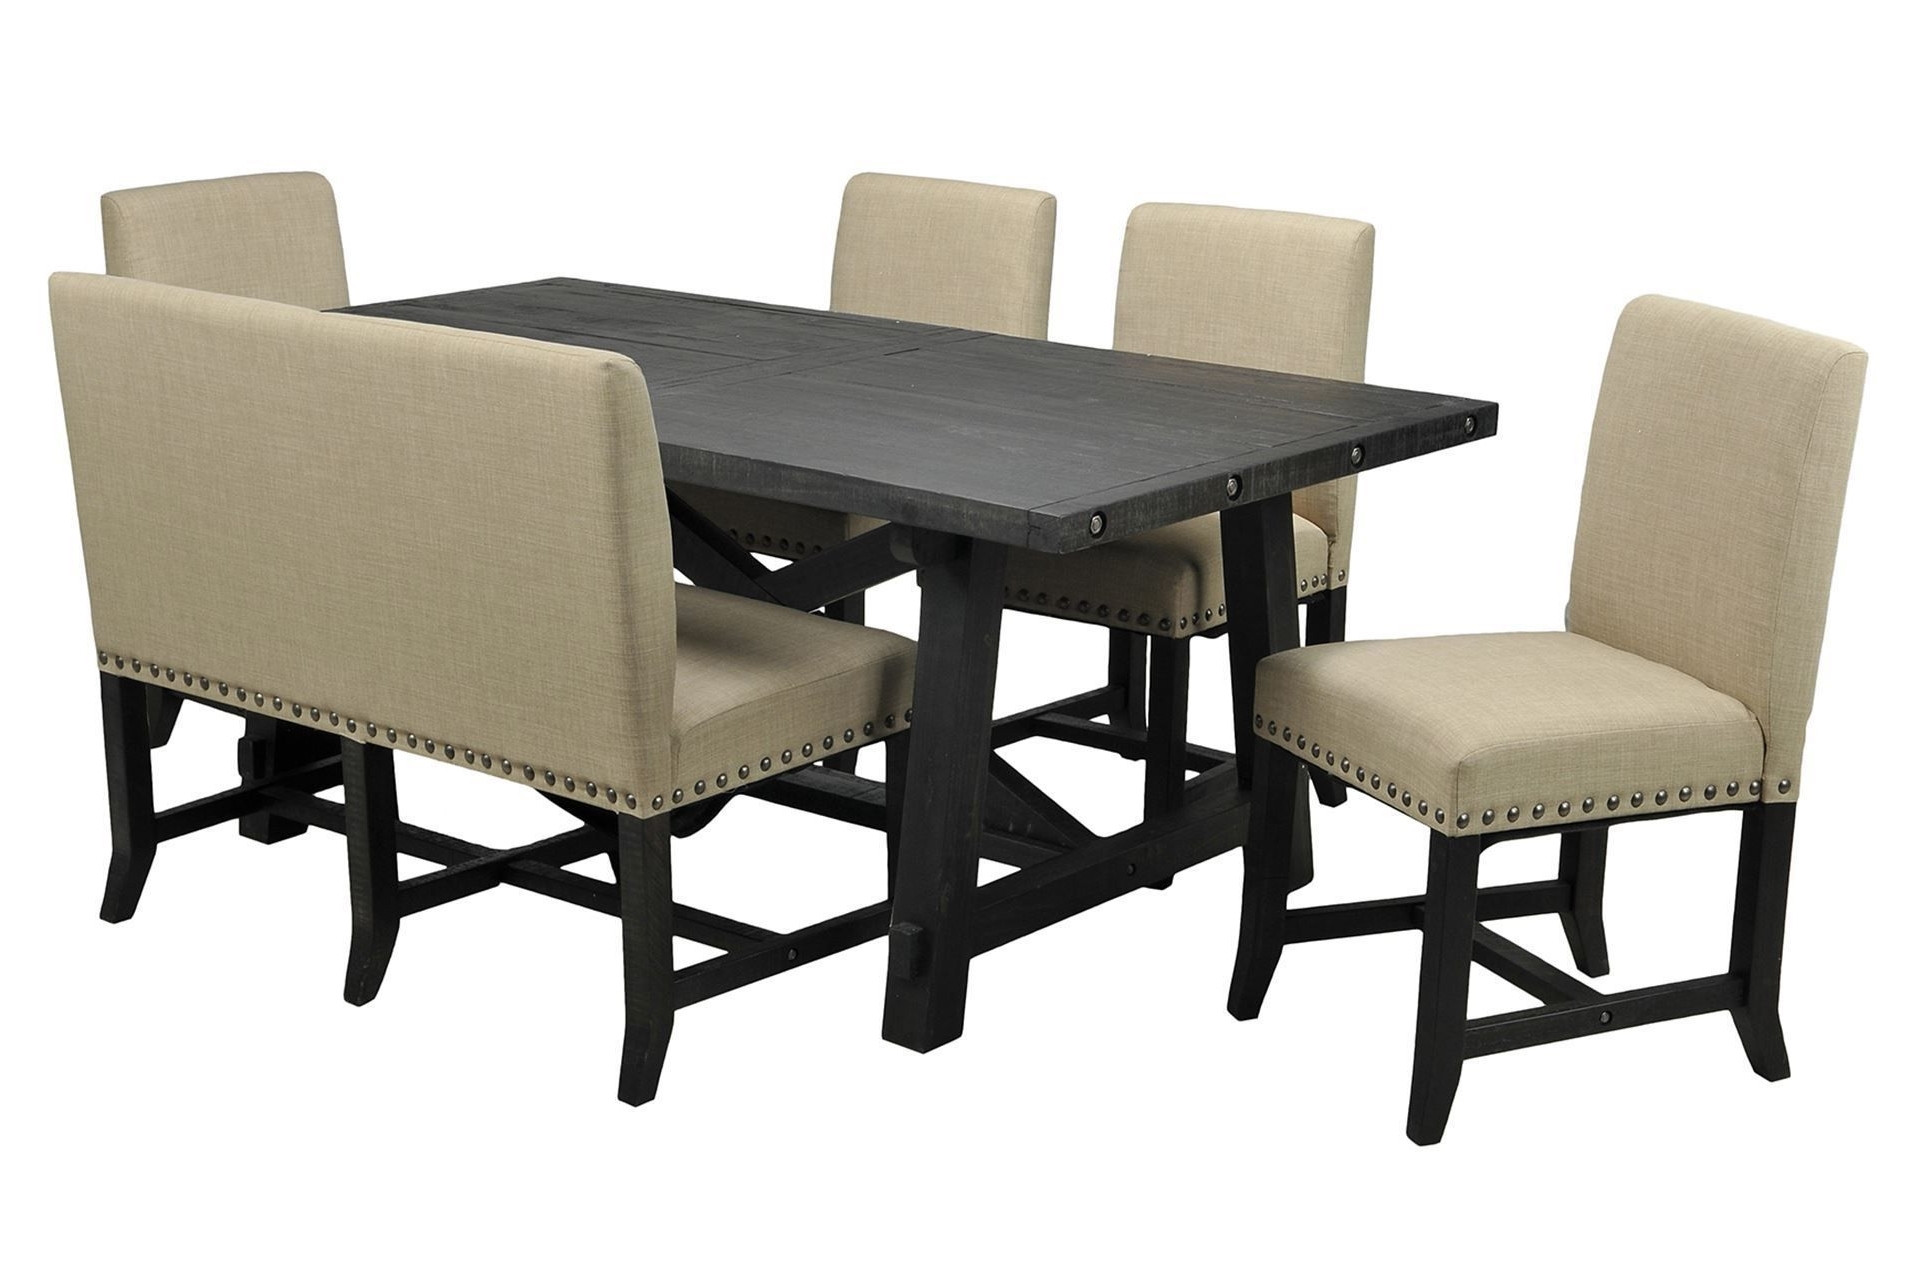 Most Recent Jaxon 6 Piece Rectangle Dining Sets With Bench & Wood Chairs Intended For Jaxon 6 Piece Rectangle Dining Set W/bench & Uph Chairs (View 2 of 25)